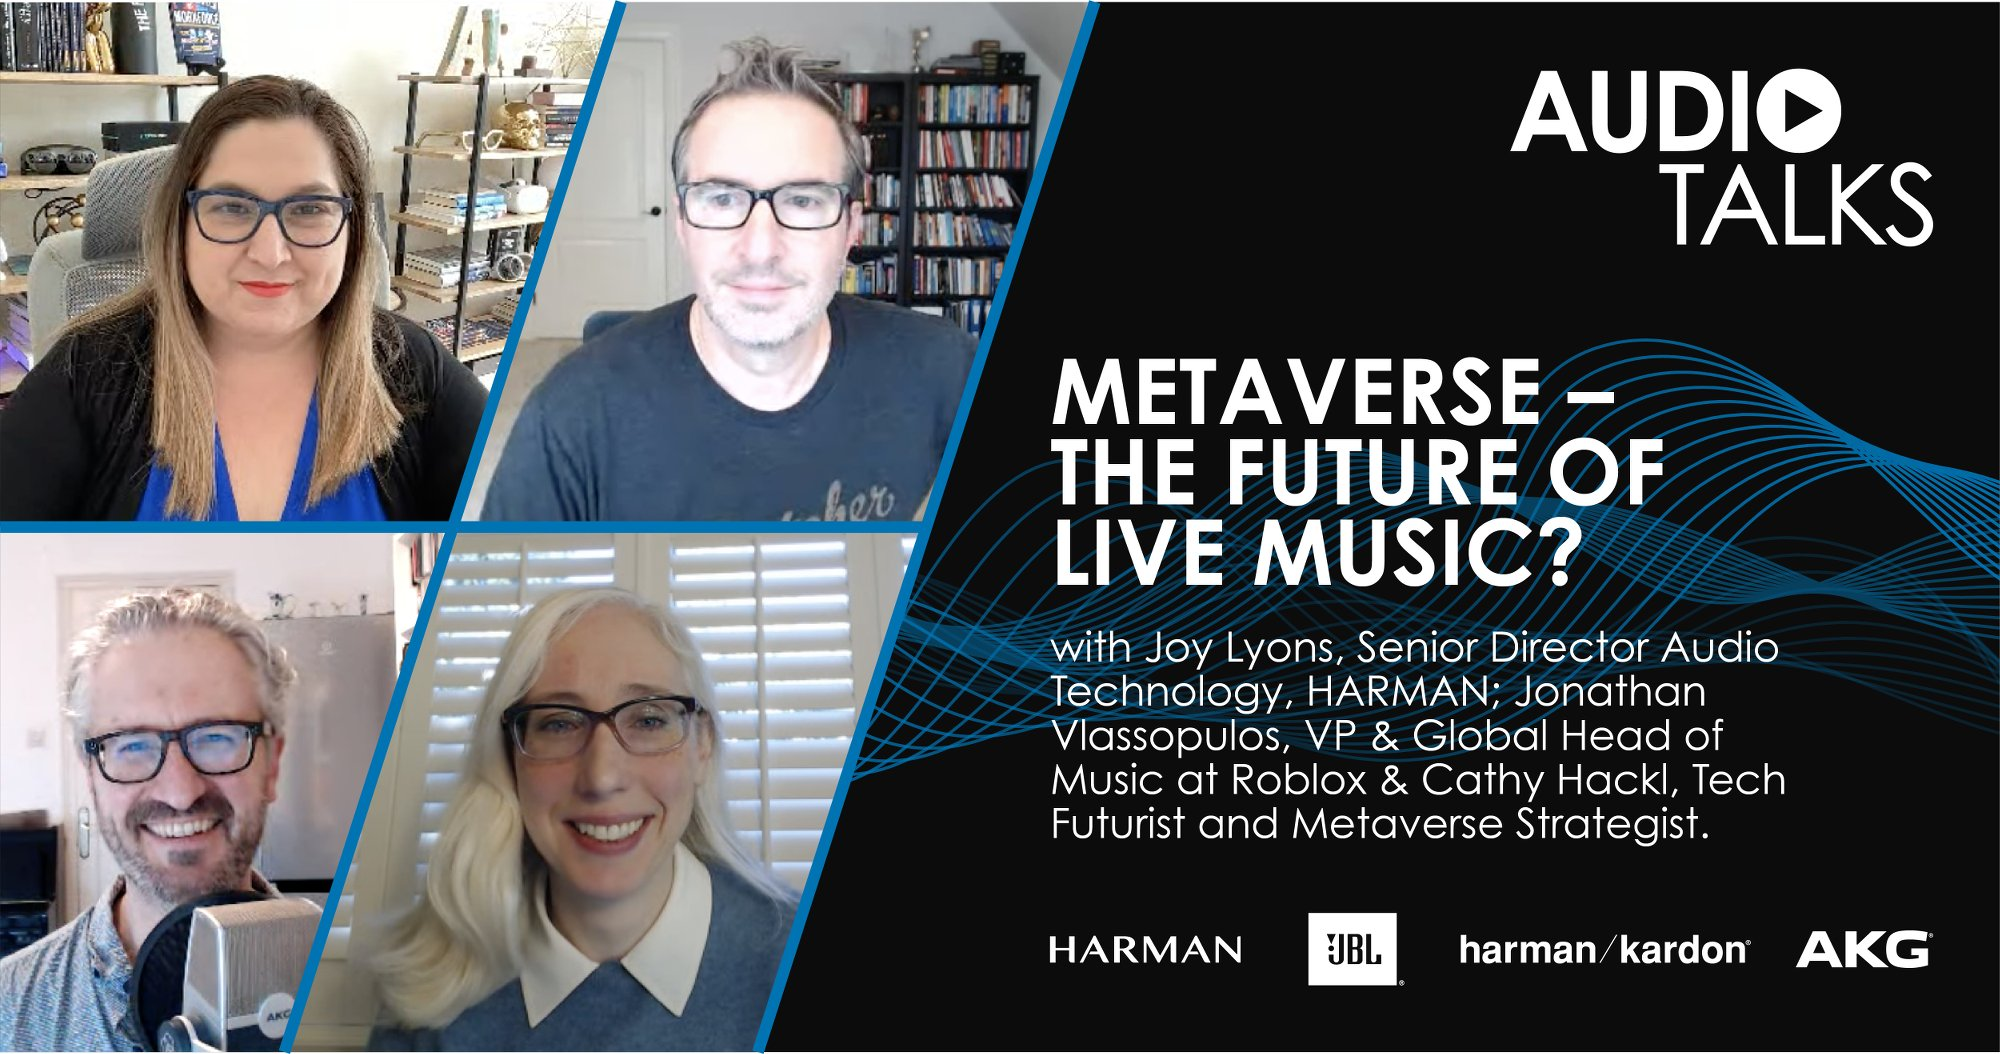 Metaverse – the future of live music?